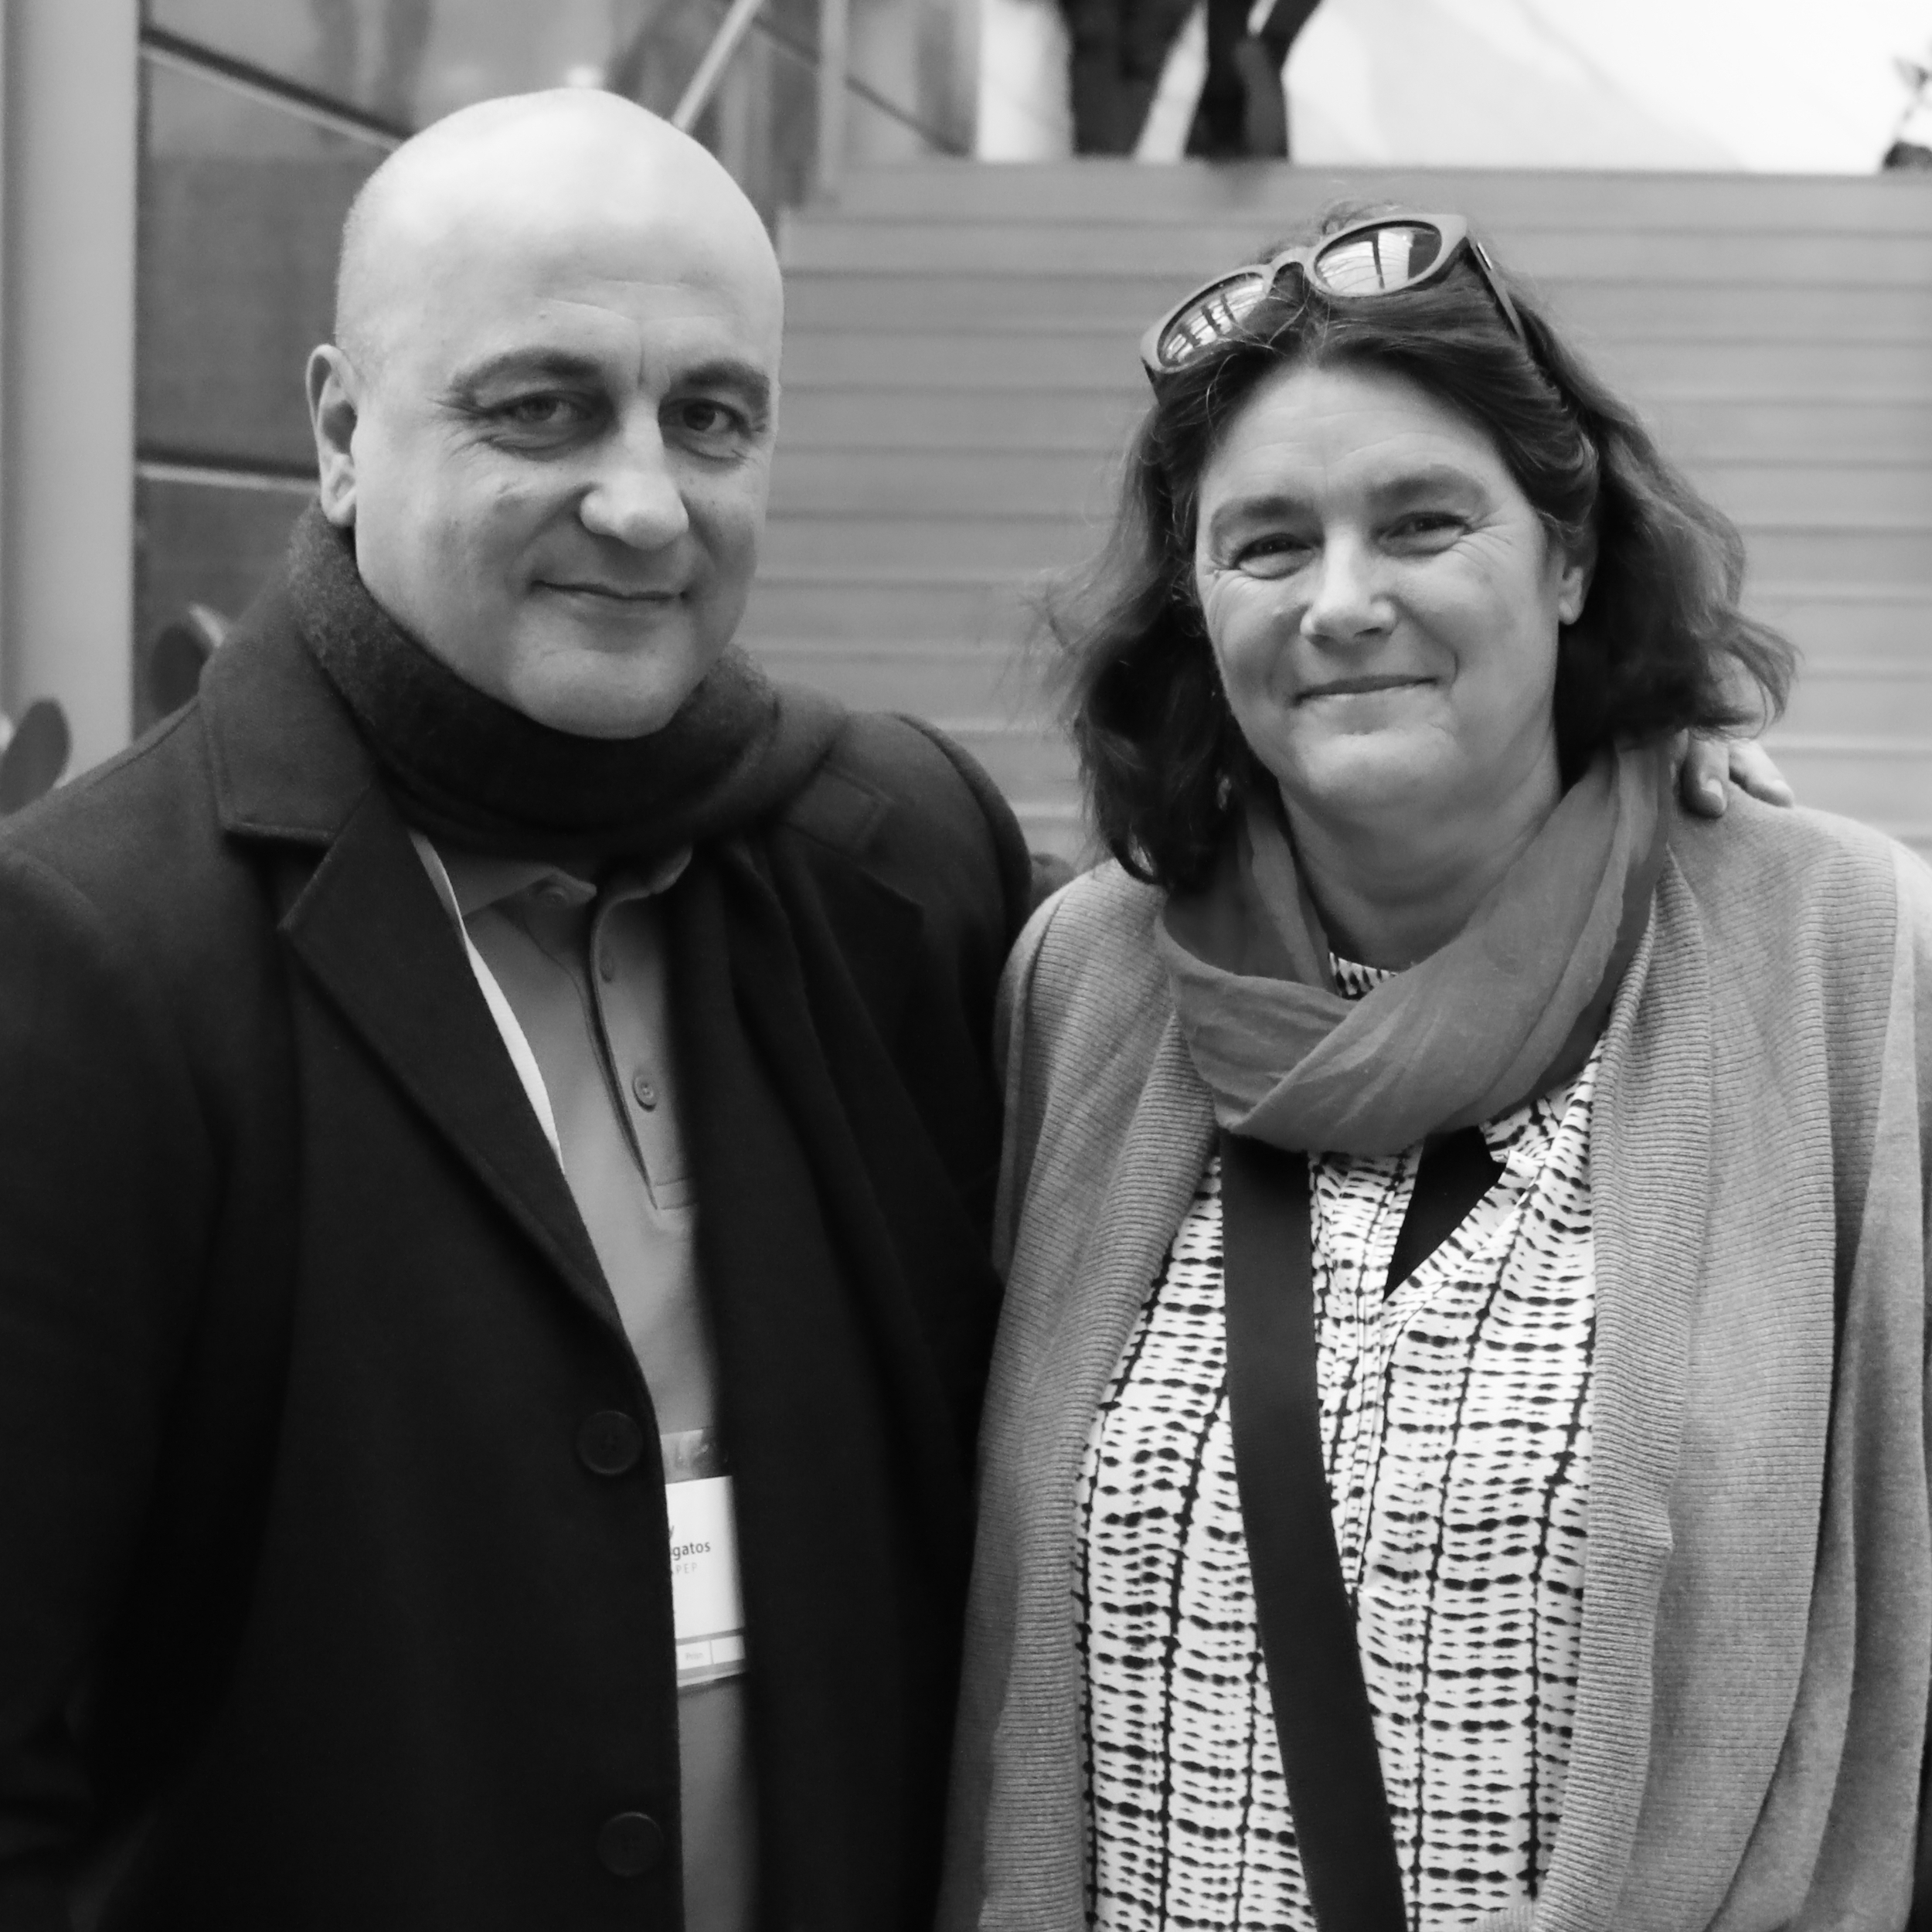 Photo: Alexander Hayes (L) Gerry Georgatos (R) Samia Goudie @ 2016 Suicide Prevention Conference, Canberra, Australia